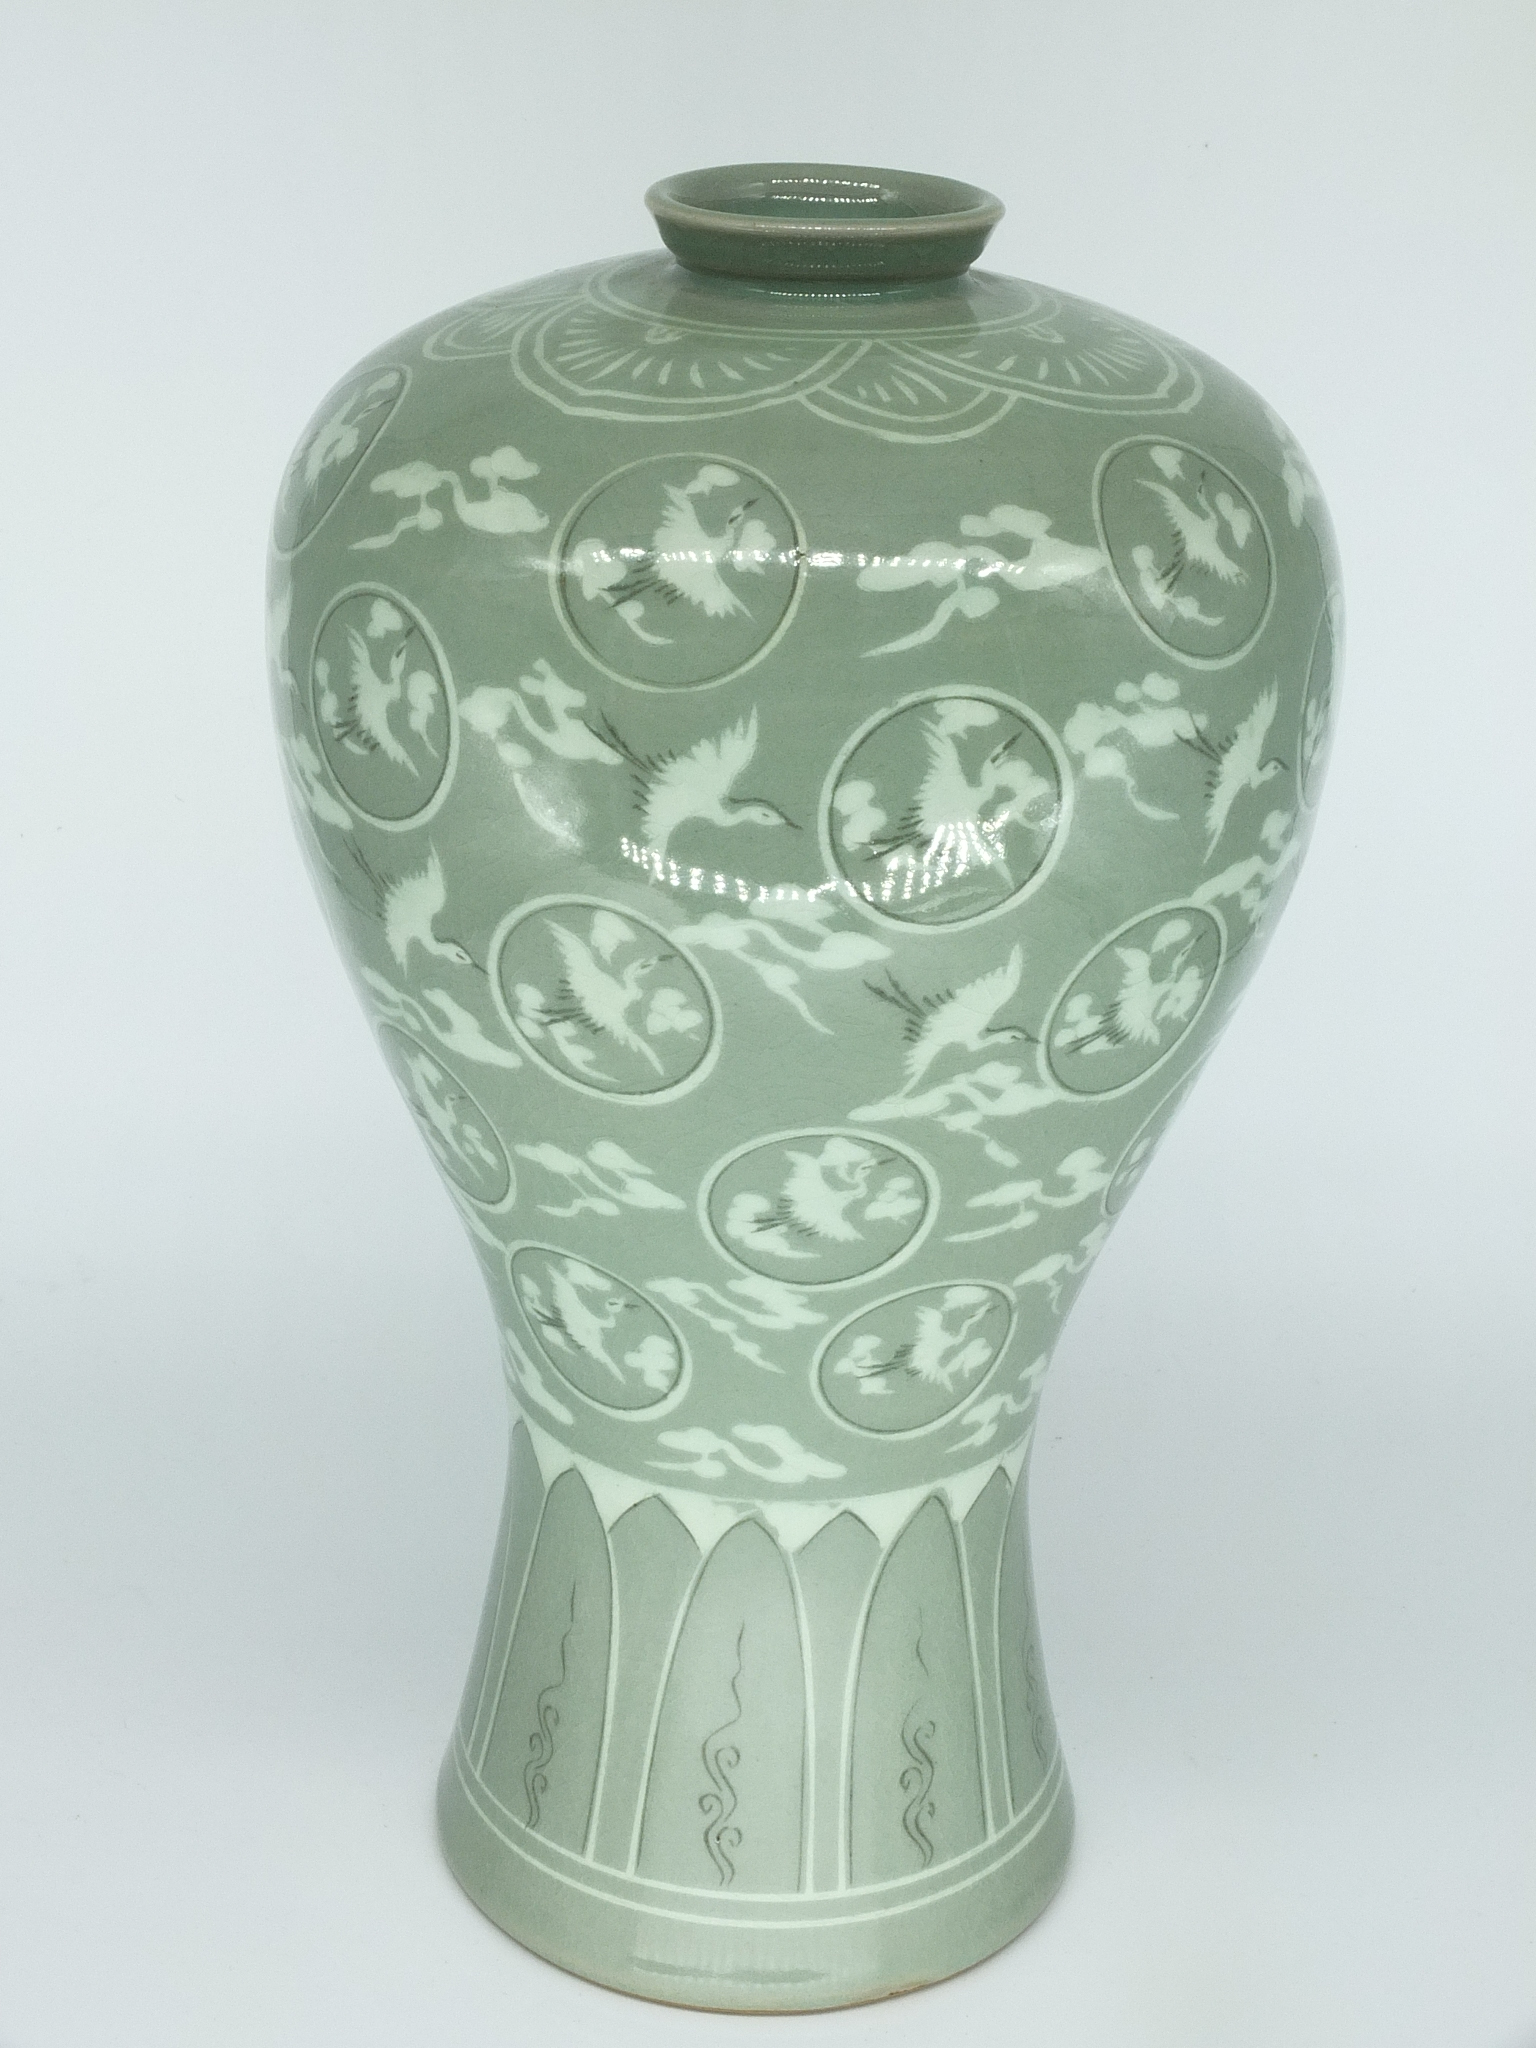 'Korean Slip Inlaid Celadon Vase with Bespoke Wooden Box 20th Century'